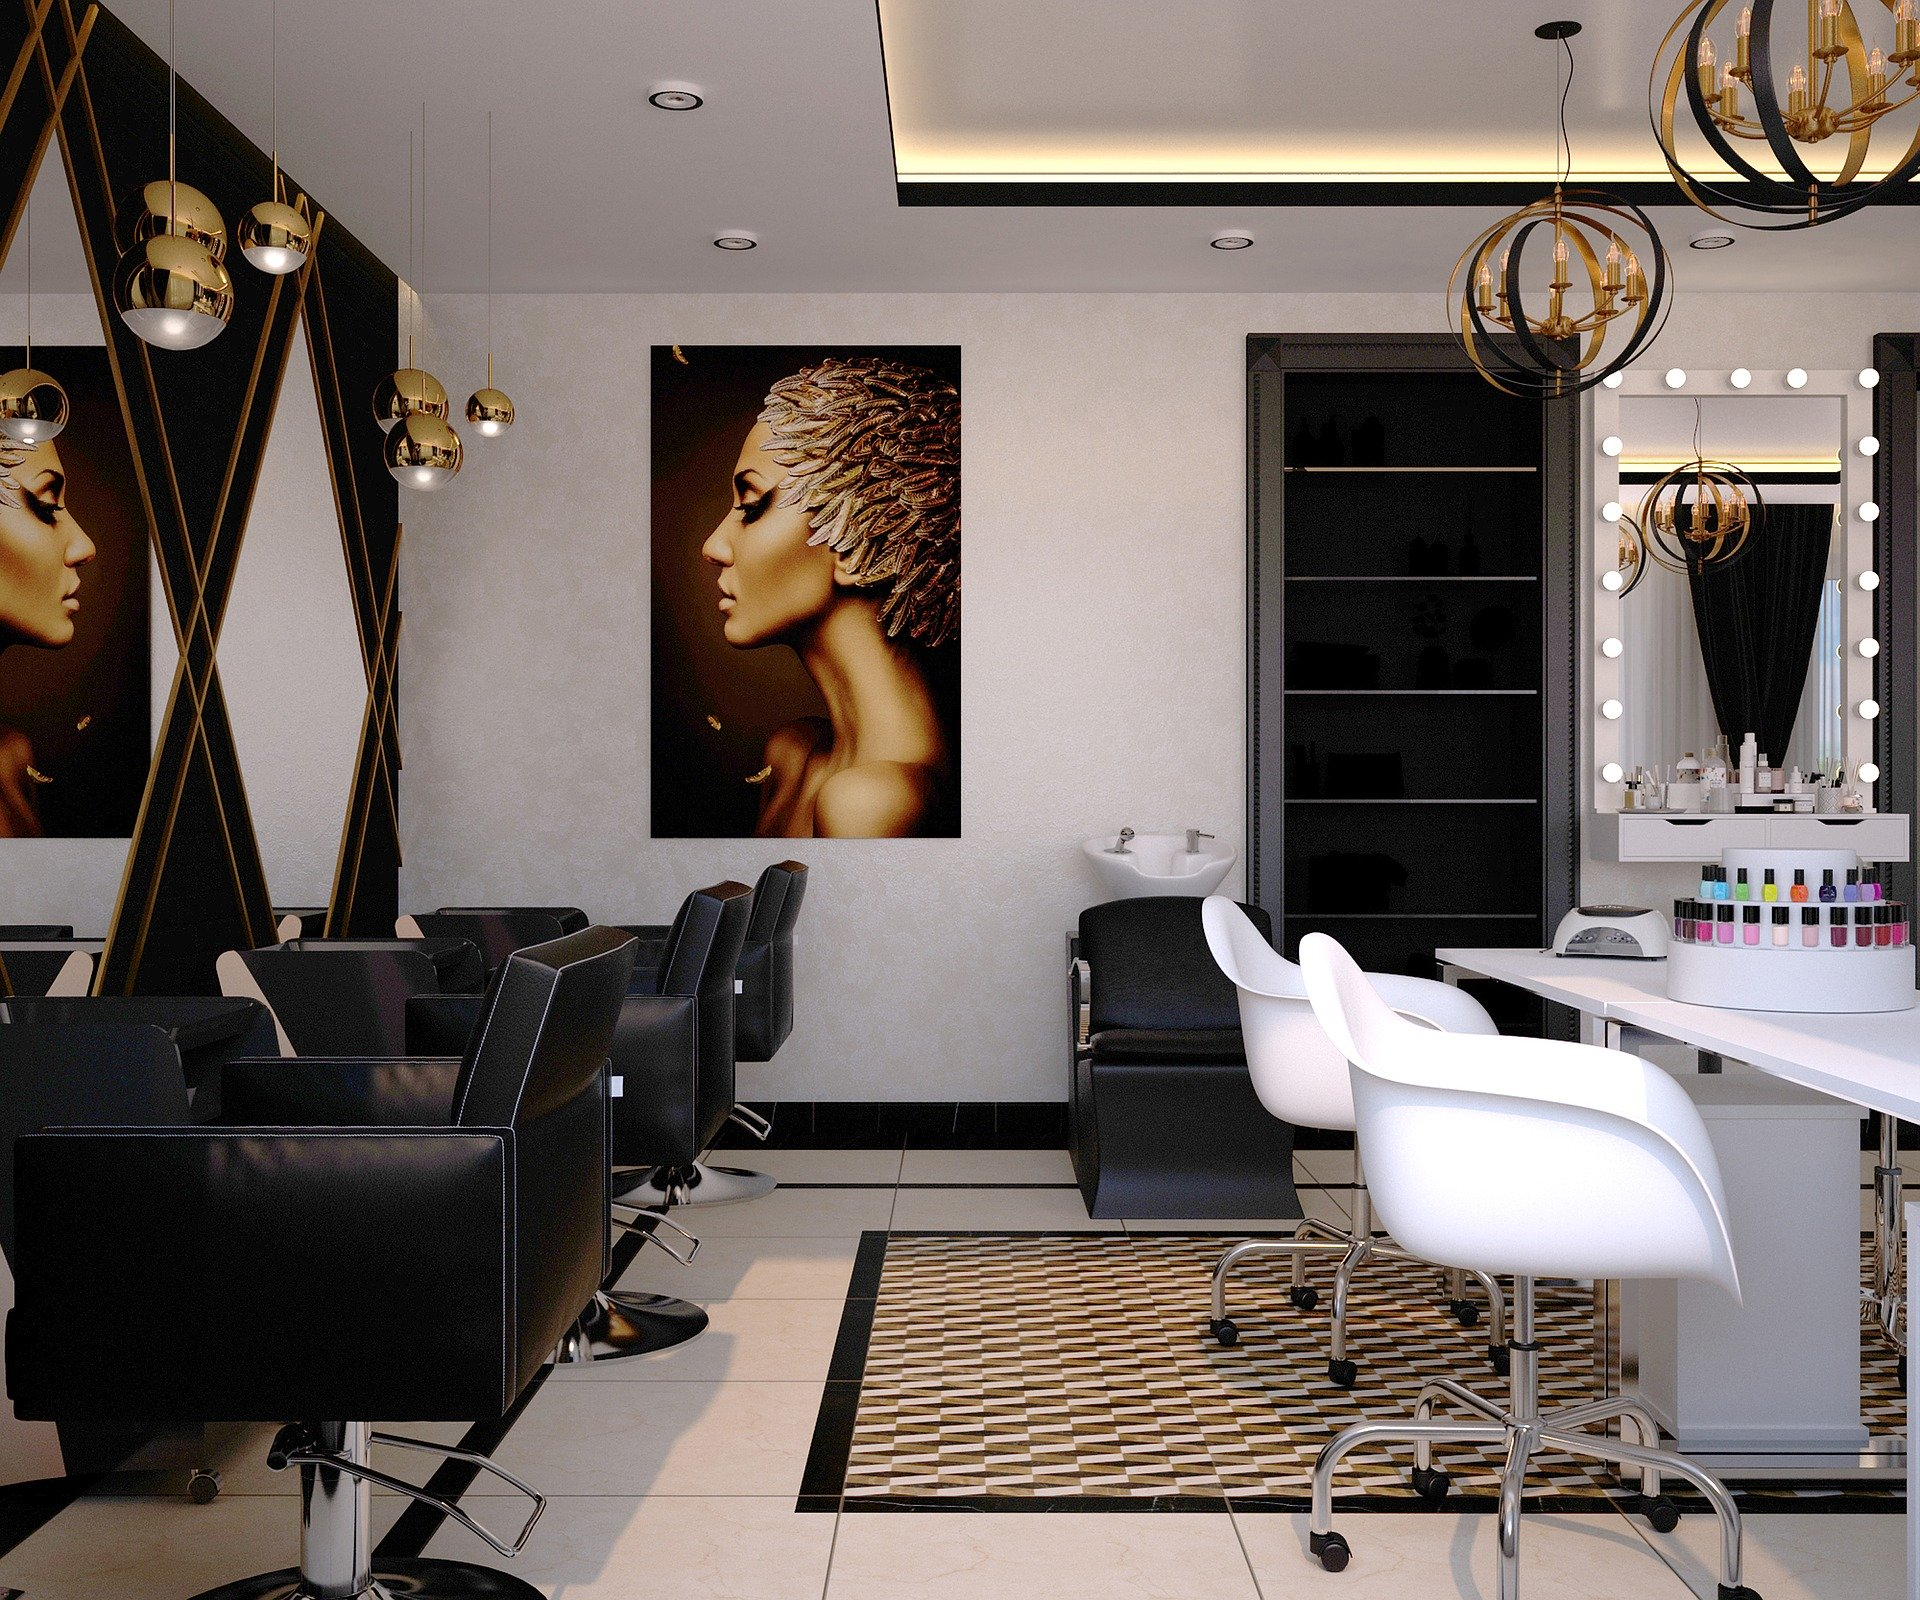 A Beauty Salon Sydney Can Help You Look Your Best